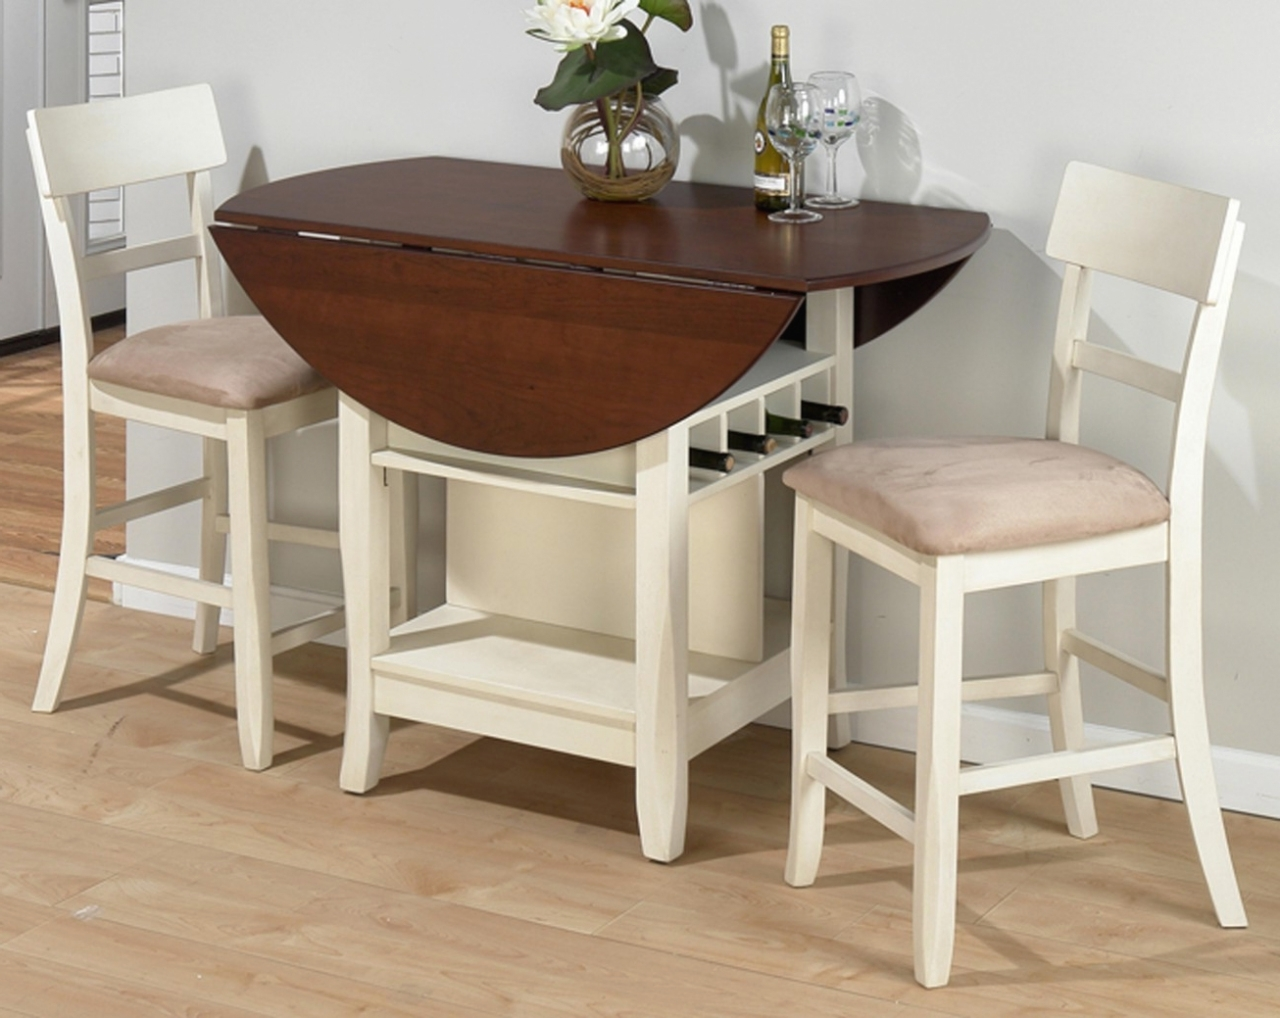 Dining: Fantastic Drop Leaf Dining Table For Small Spaces — Cole Intended For Favorite Two Person Dining Tables (Gallery 4 of 25)